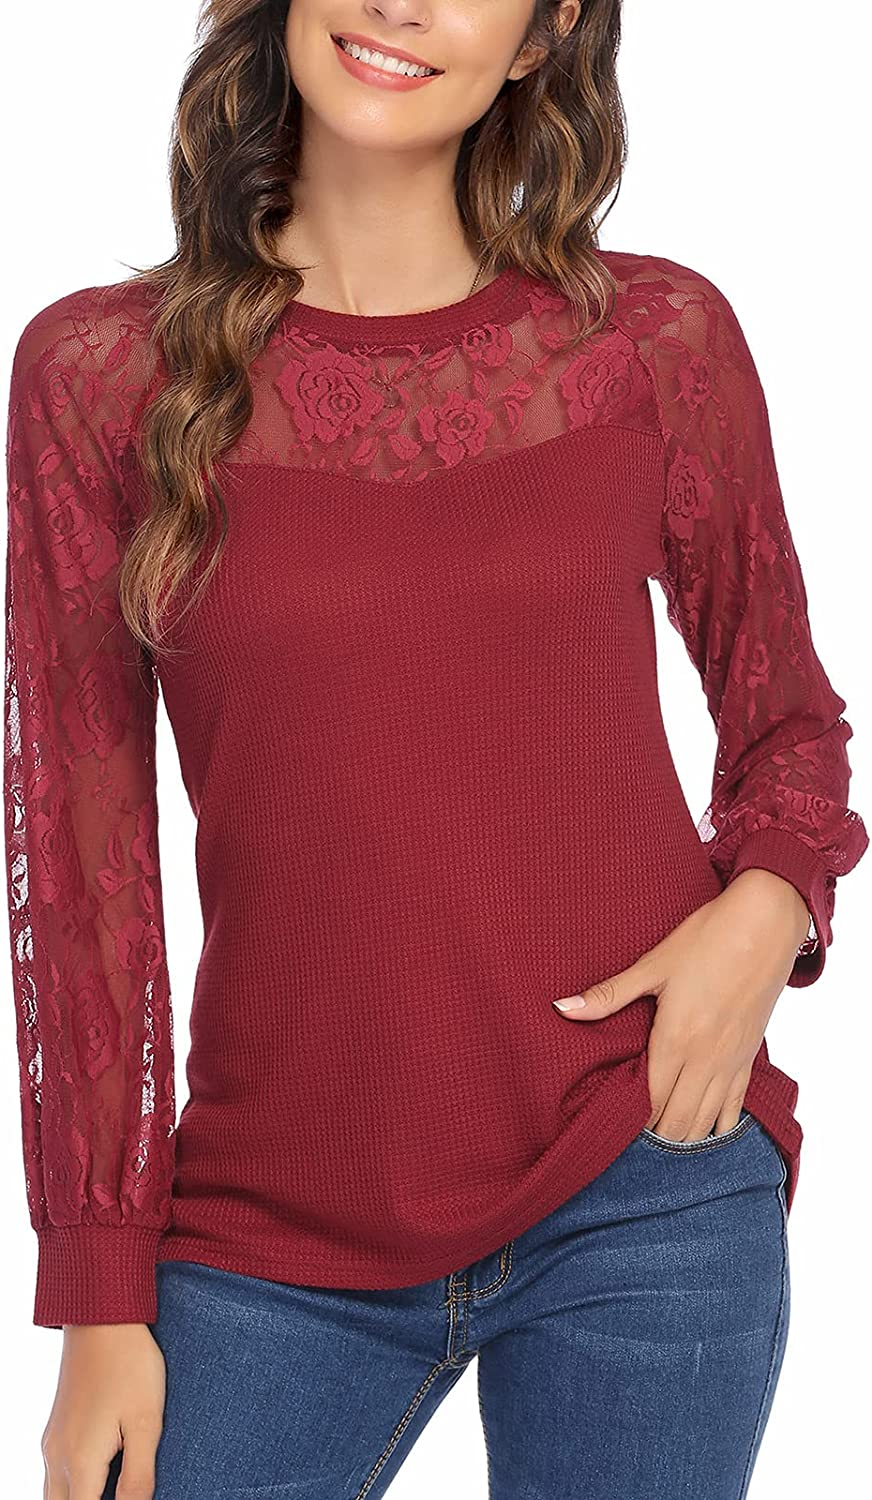 Leaduty Womens Lace Long Sleeve Tops Crew Neck Casual Loose Blouses Knit T Shirt